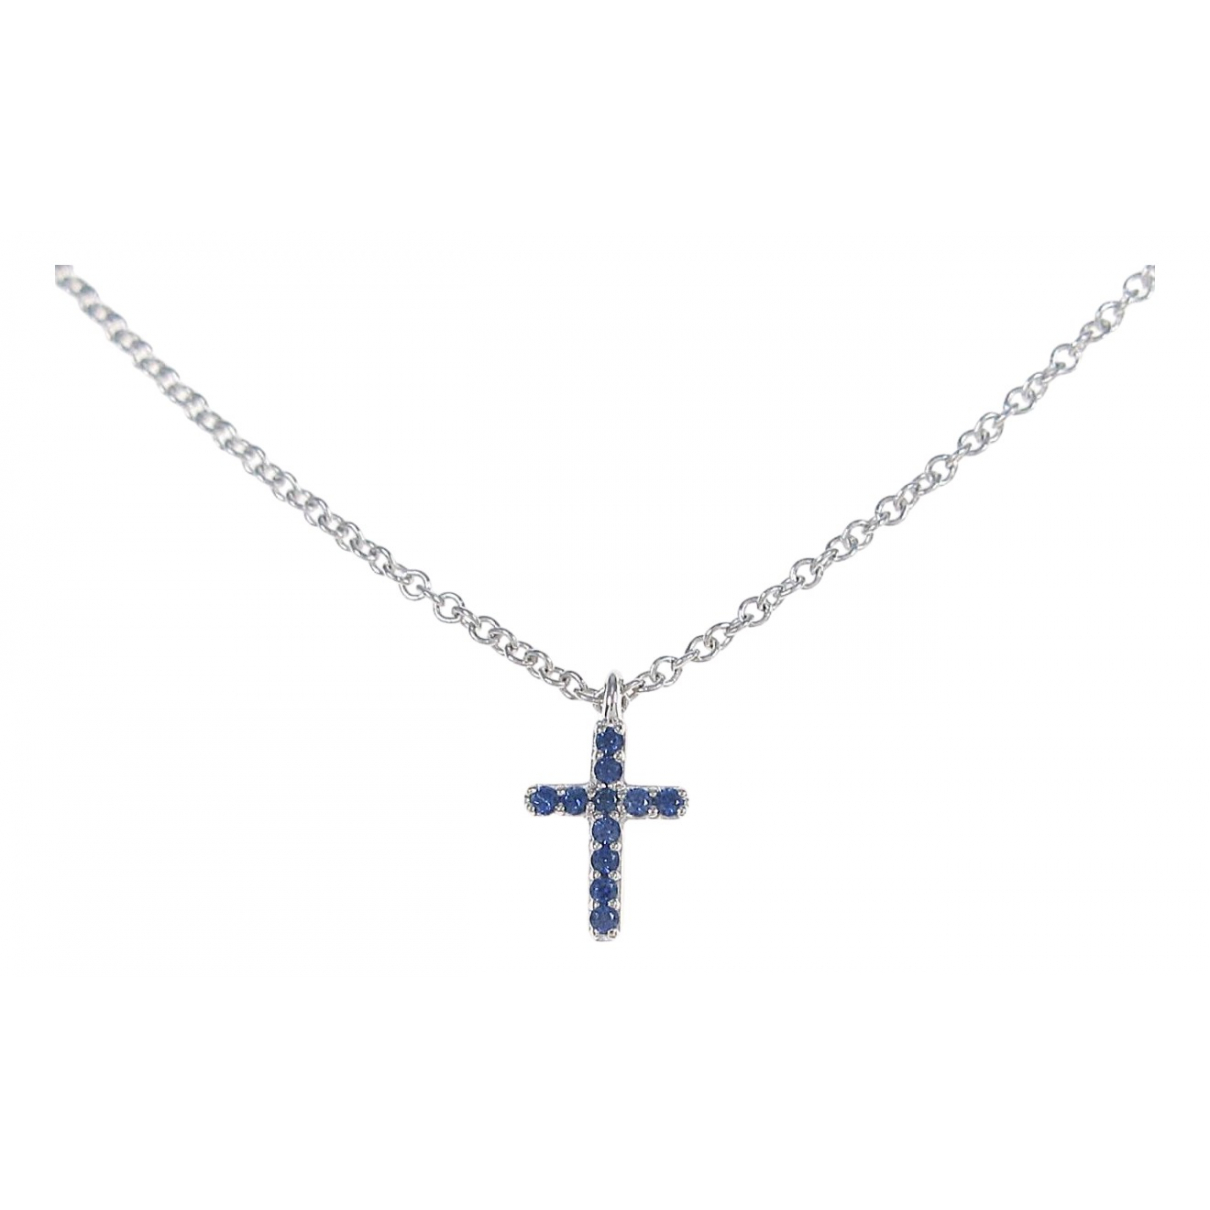 Tiffany & Co \N Silver White gold necklace for Women \N